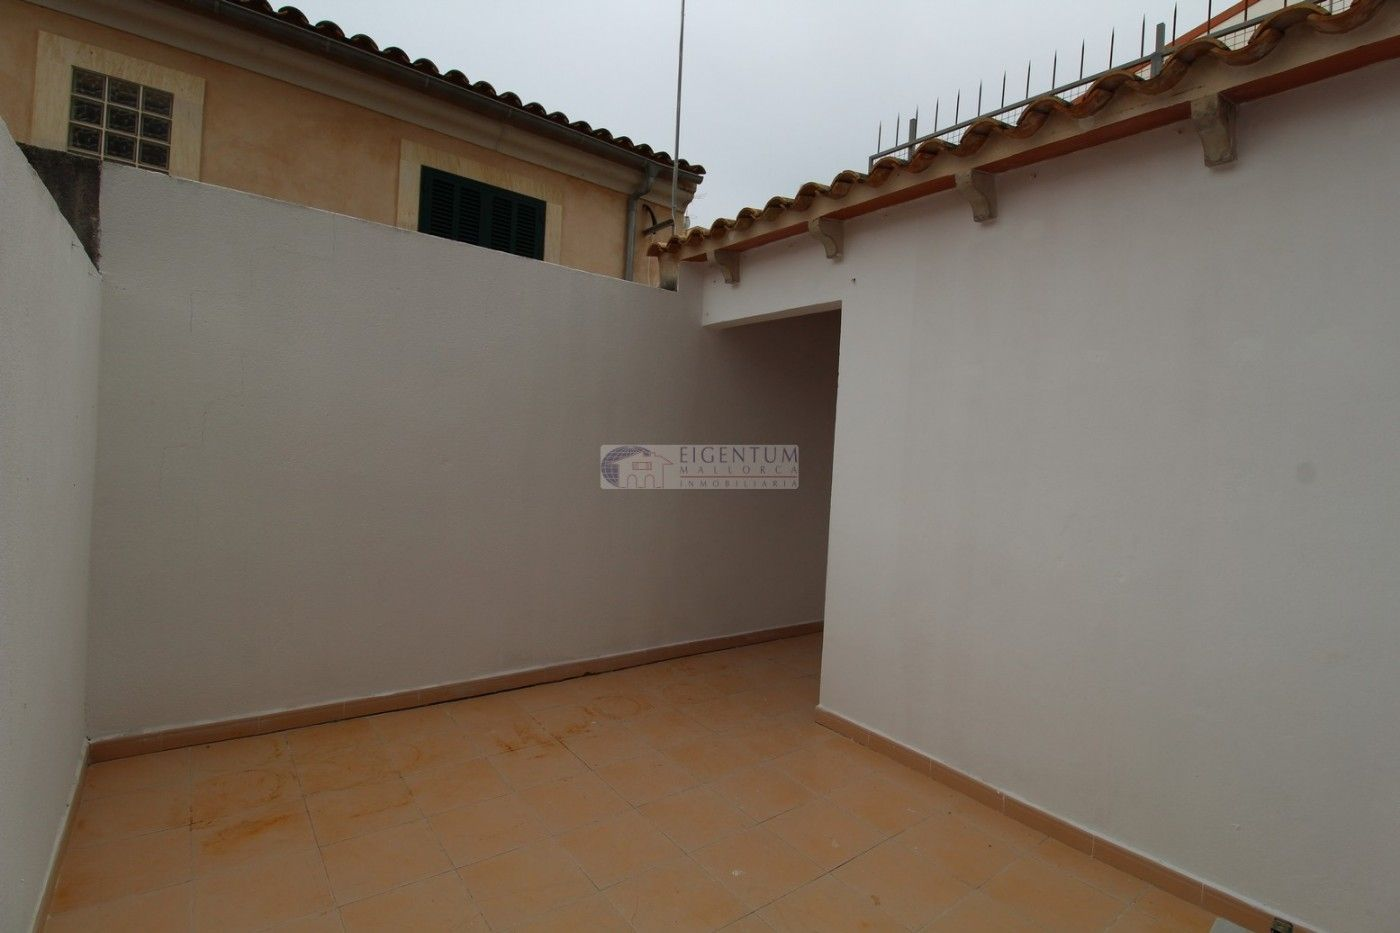 Ground floor in Carrer monges, de les ( p.c. ), 27. Planta baja en porto cristo